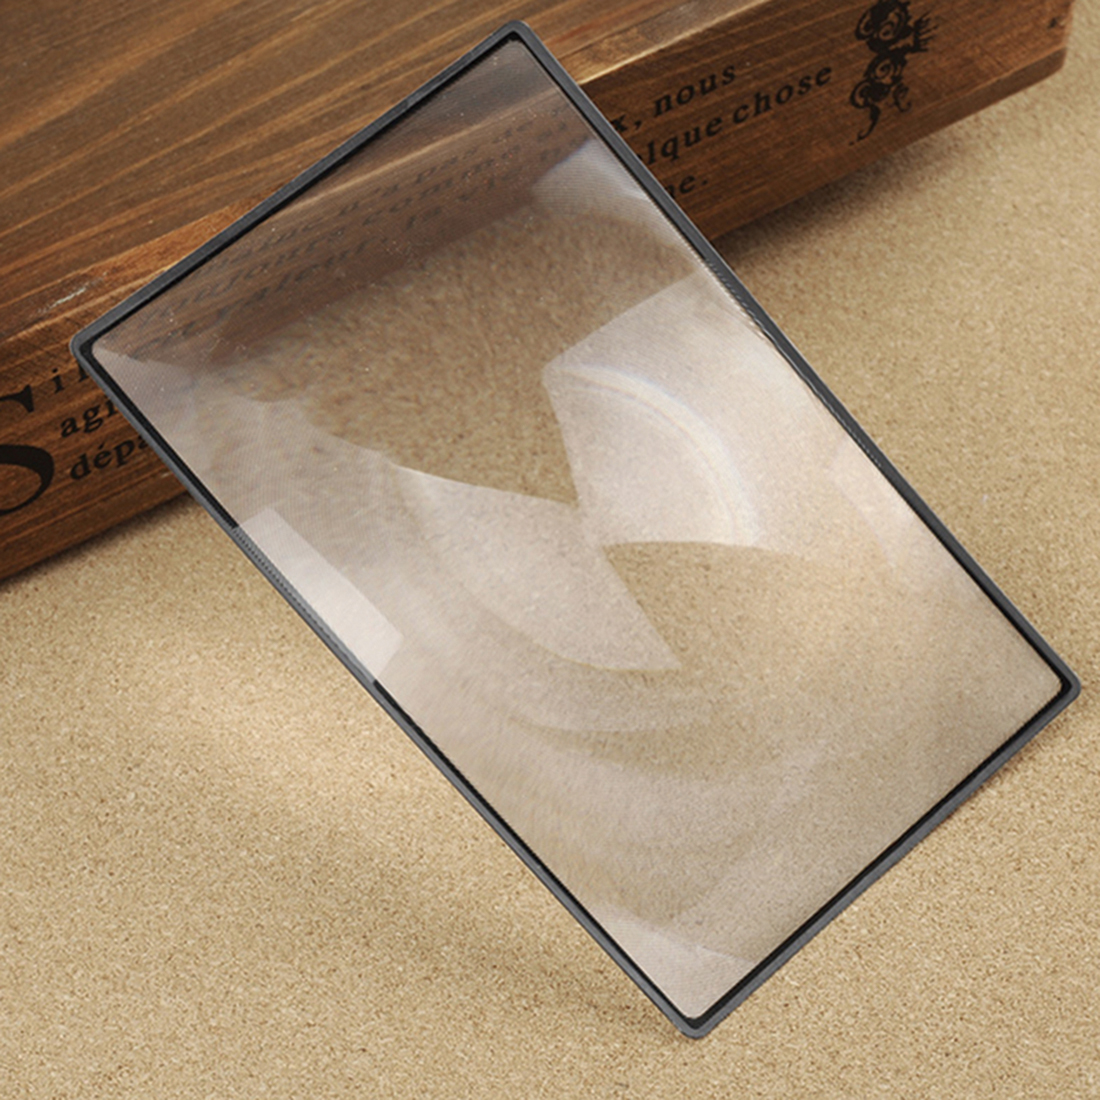 Reading Glass Lens 180X120mm Convinient A5 Flat PVC Magnifier Sheet X3 Book Page Magnification Magnifying full page magnifying sheet fresnel lens 3x magnification pvc magnifier